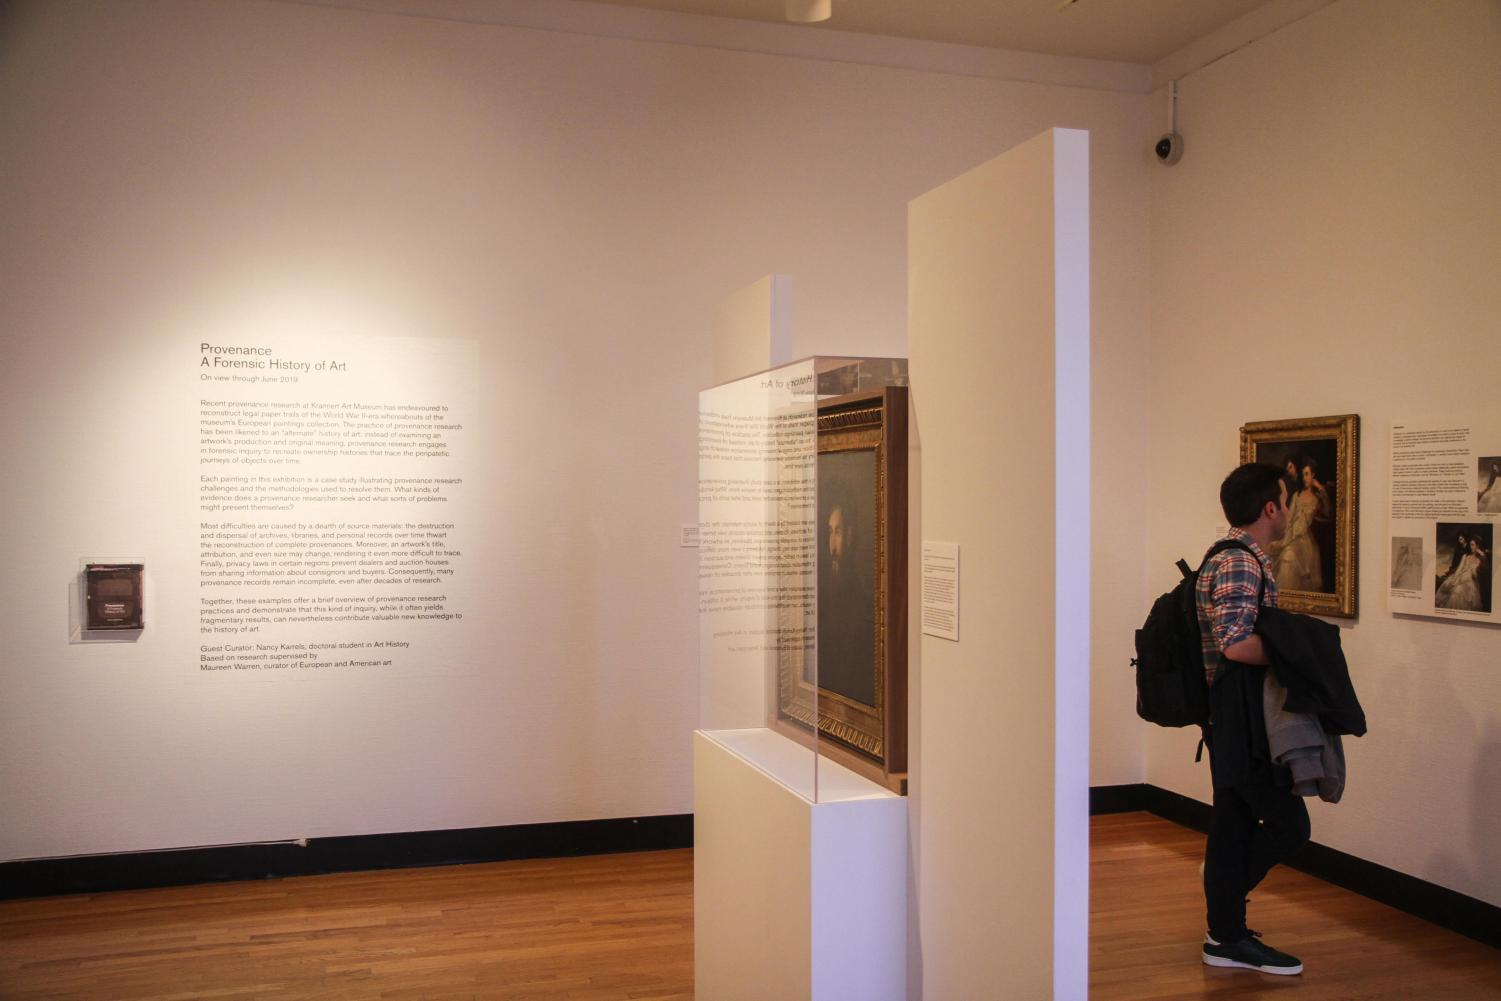 The provenance exhibit at the Krannert Art Museum. Nancy Karrels proposed the idea for a provenance research project two years ago and has been conducting research for the exhibit that opened in May of 2017.